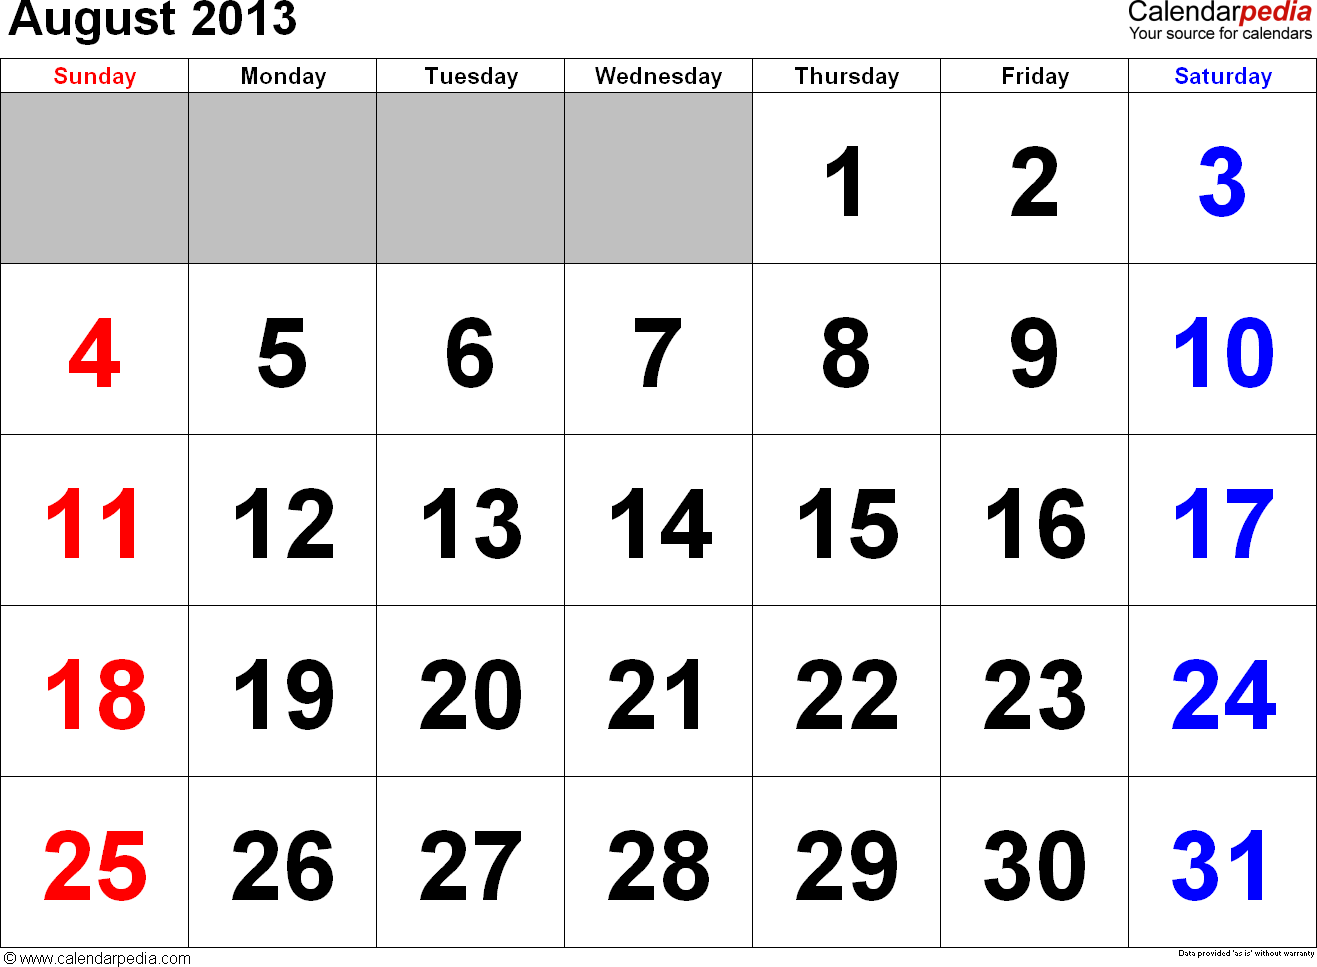 August 2013 calendar, landscape orientation, large numerals, available as printable templates for Word, Excel and PDF